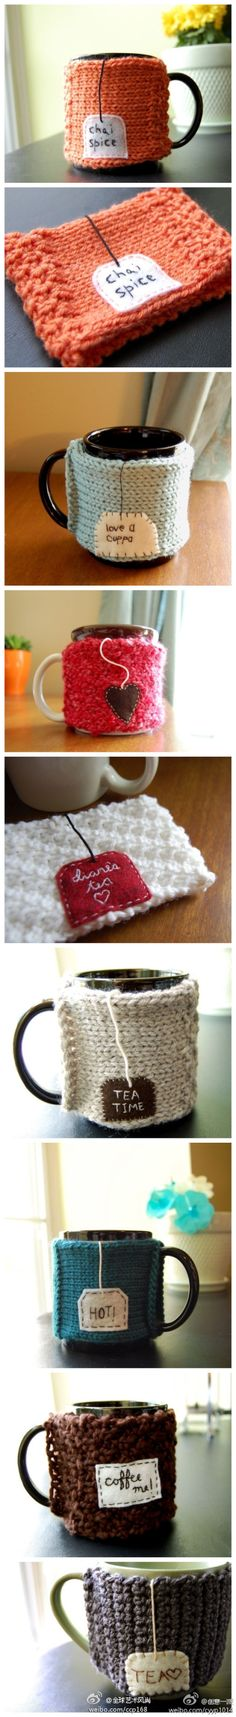 Coffee And Tea cozies...how cute is that??